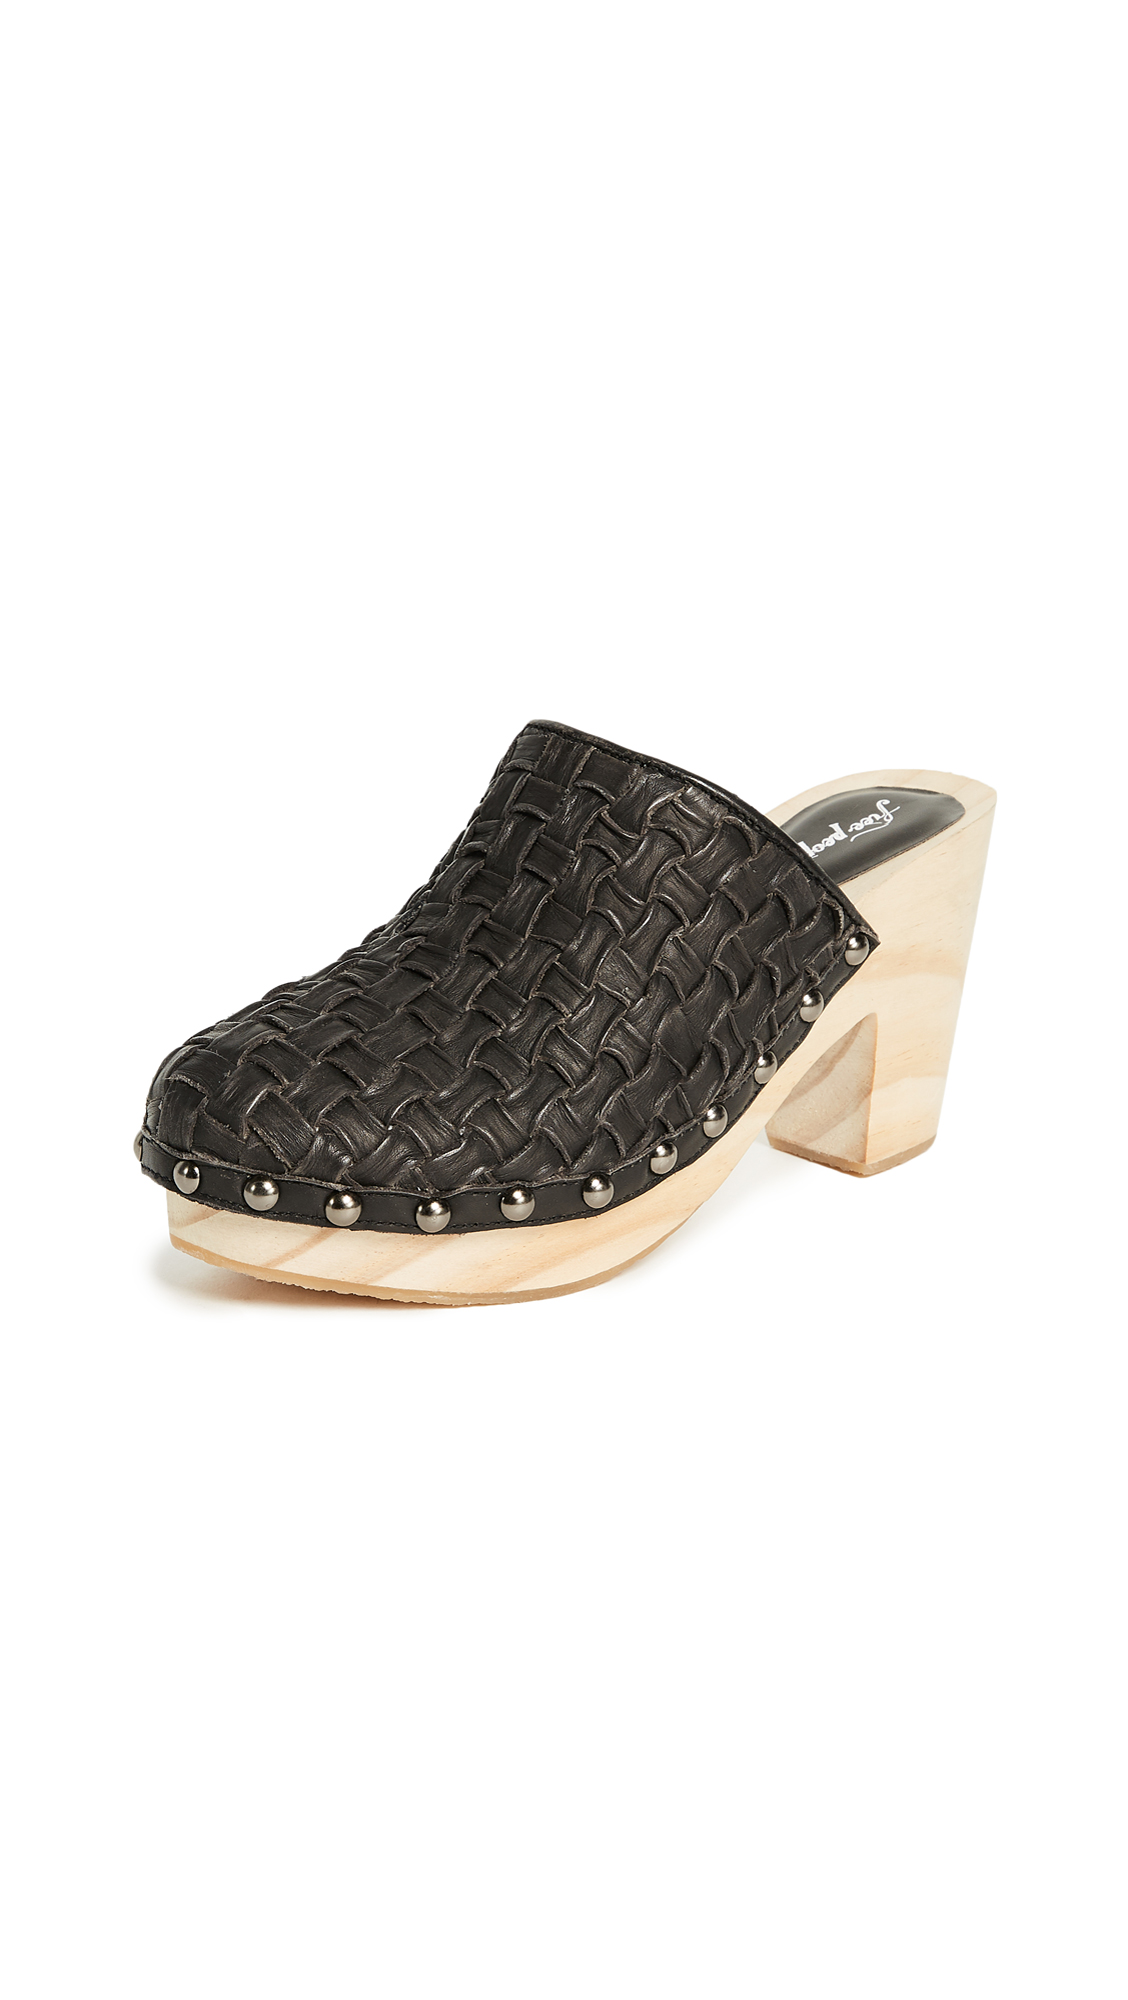 Free People Adelaide Clogs - Black